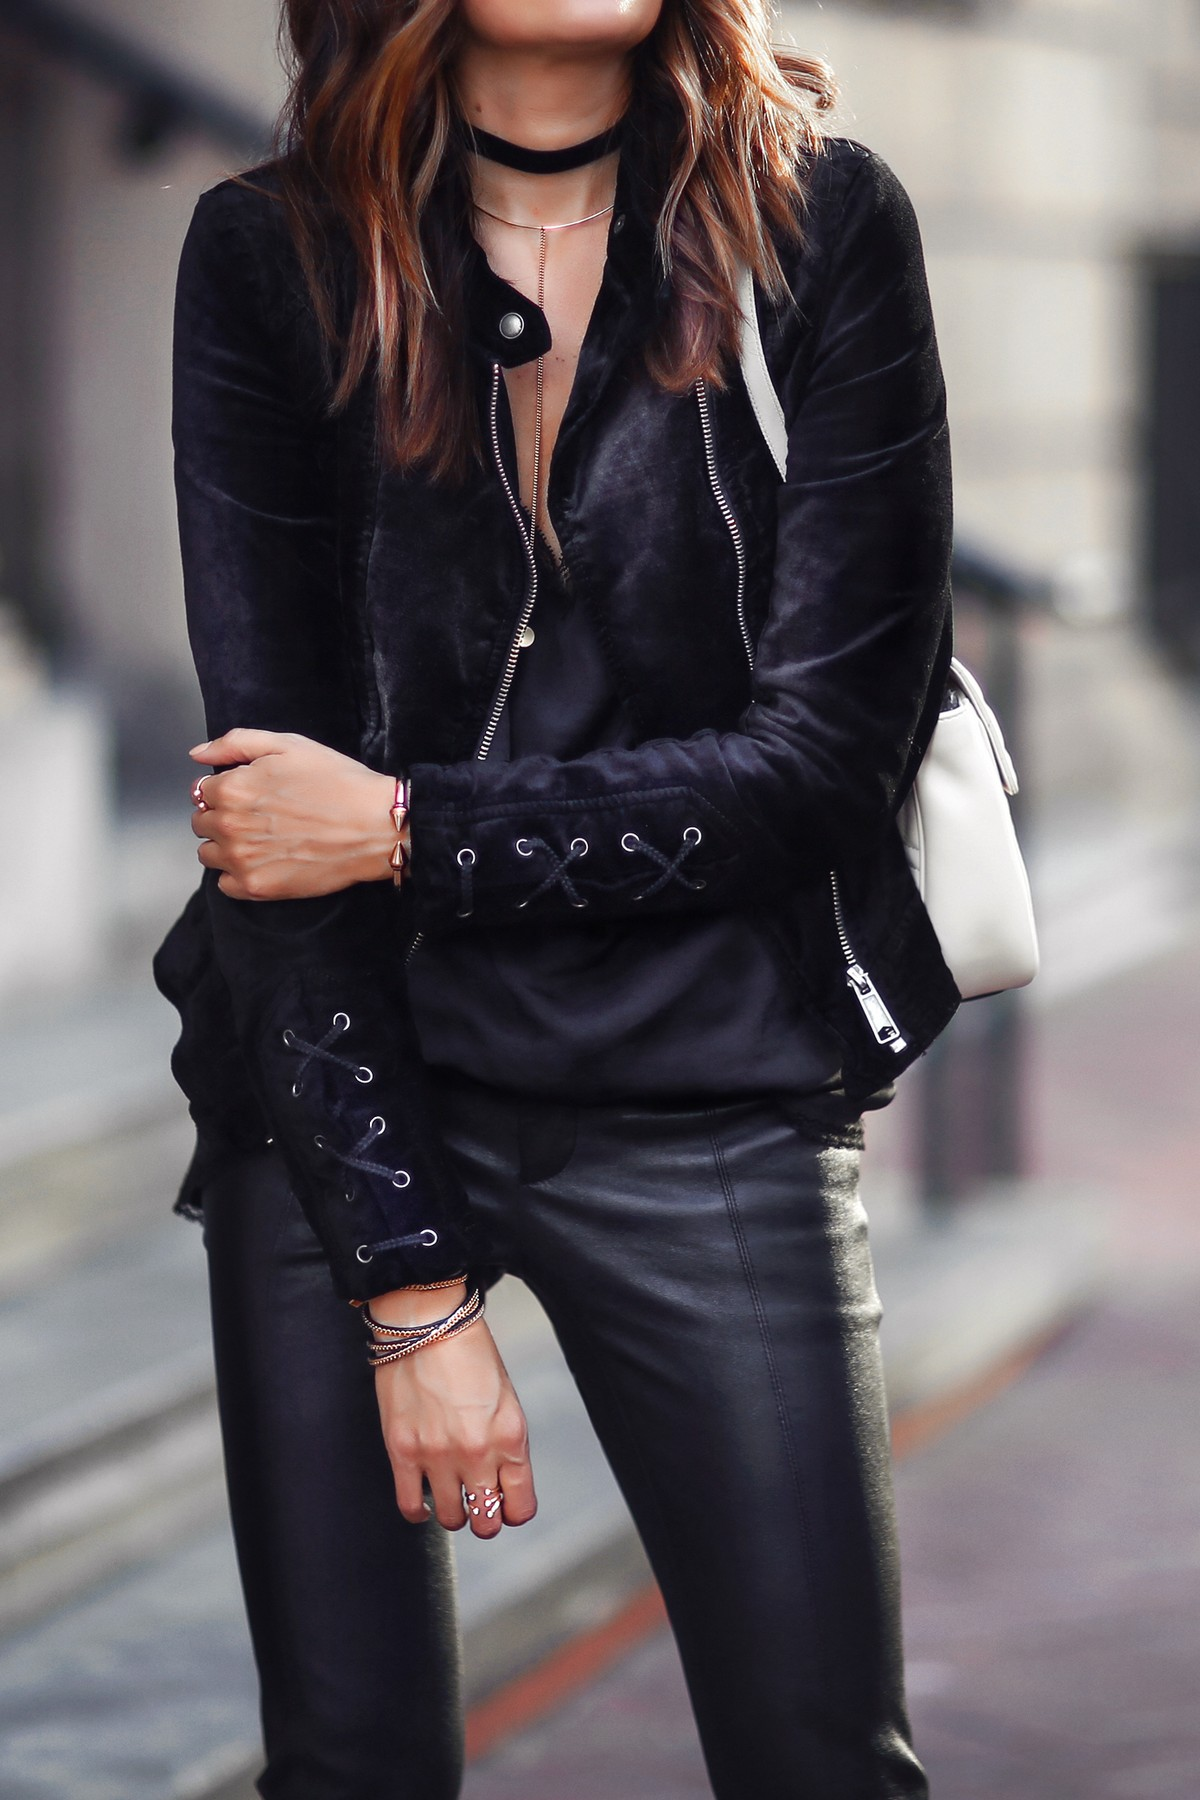 lace up velvet jacket and leather pants